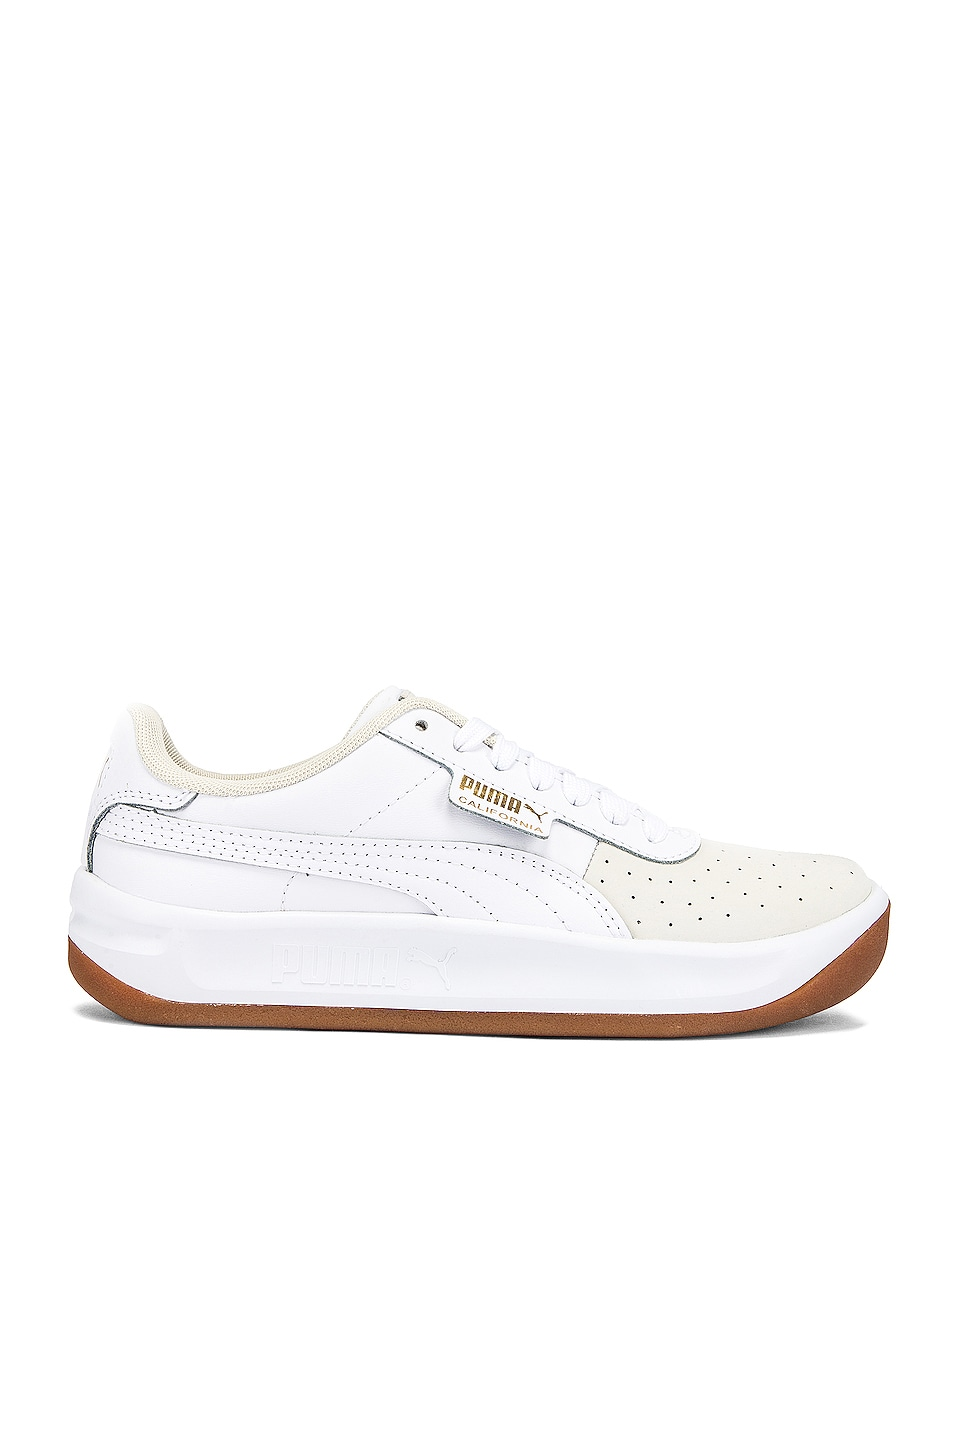 Puma California Exotic Sneaker in Whisper White & Puma White & Team Gold